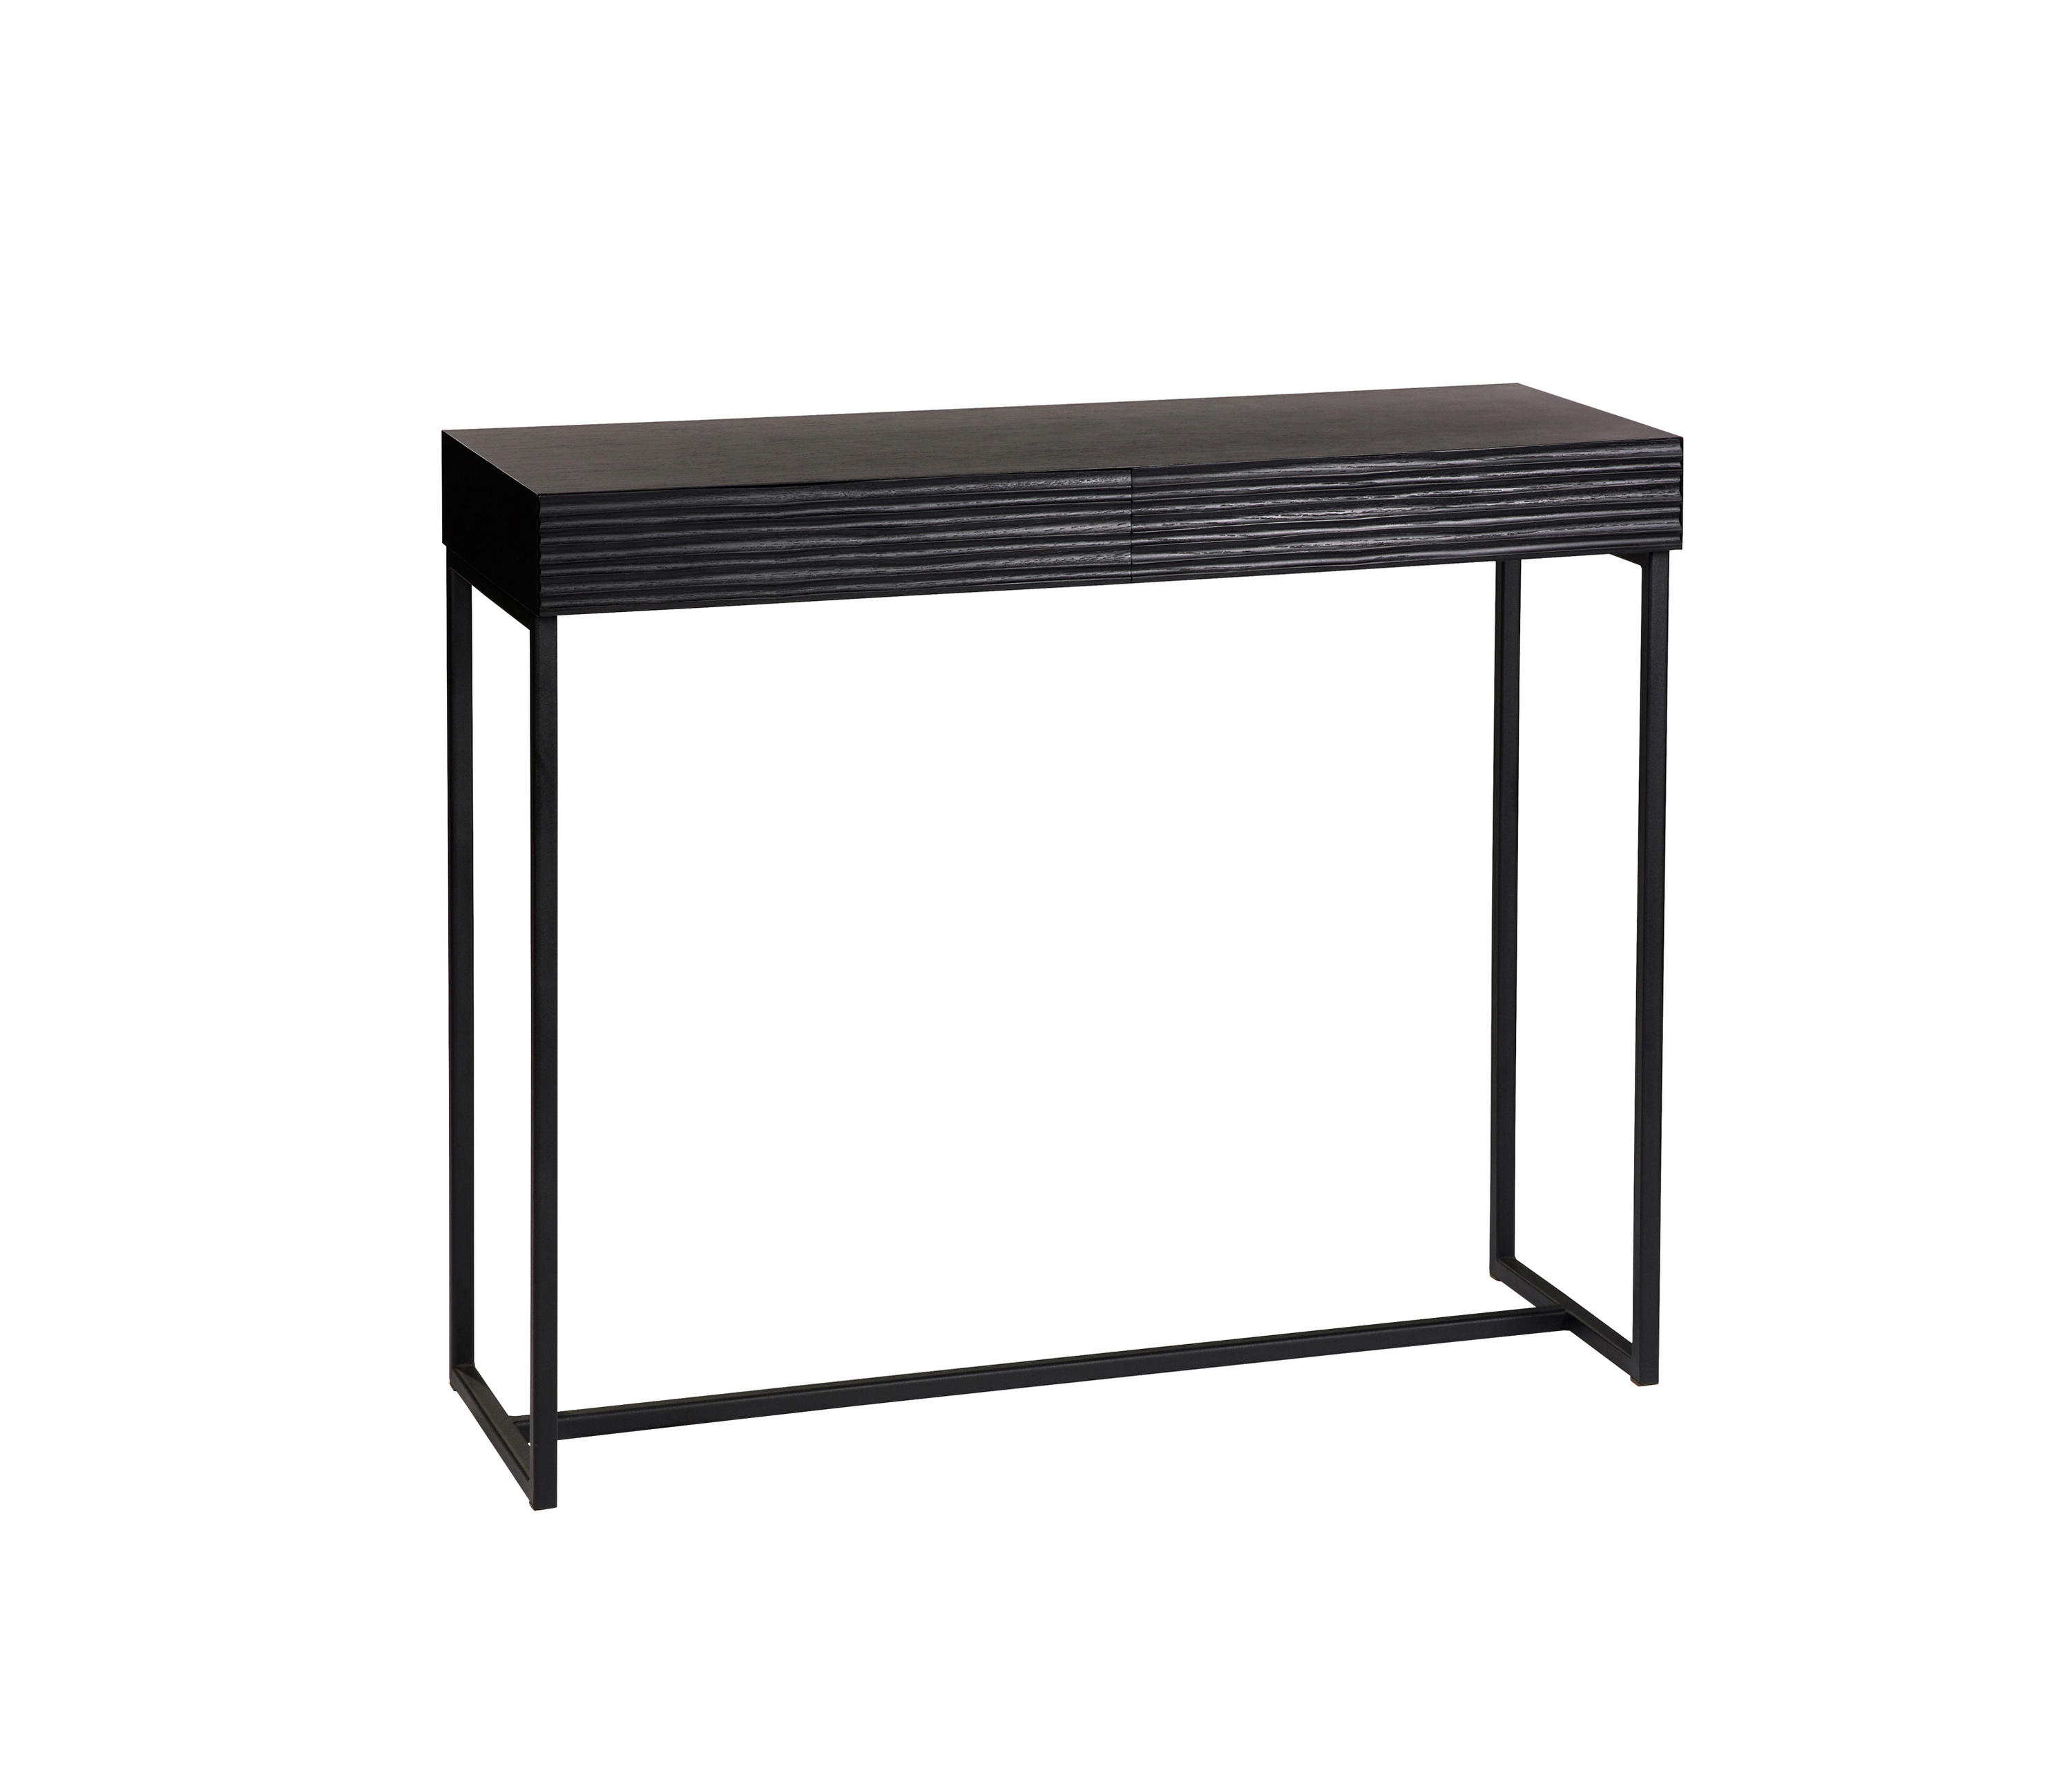 Konsolentisch Schublade Mira Console Table Console Tables From Lambert Architonic